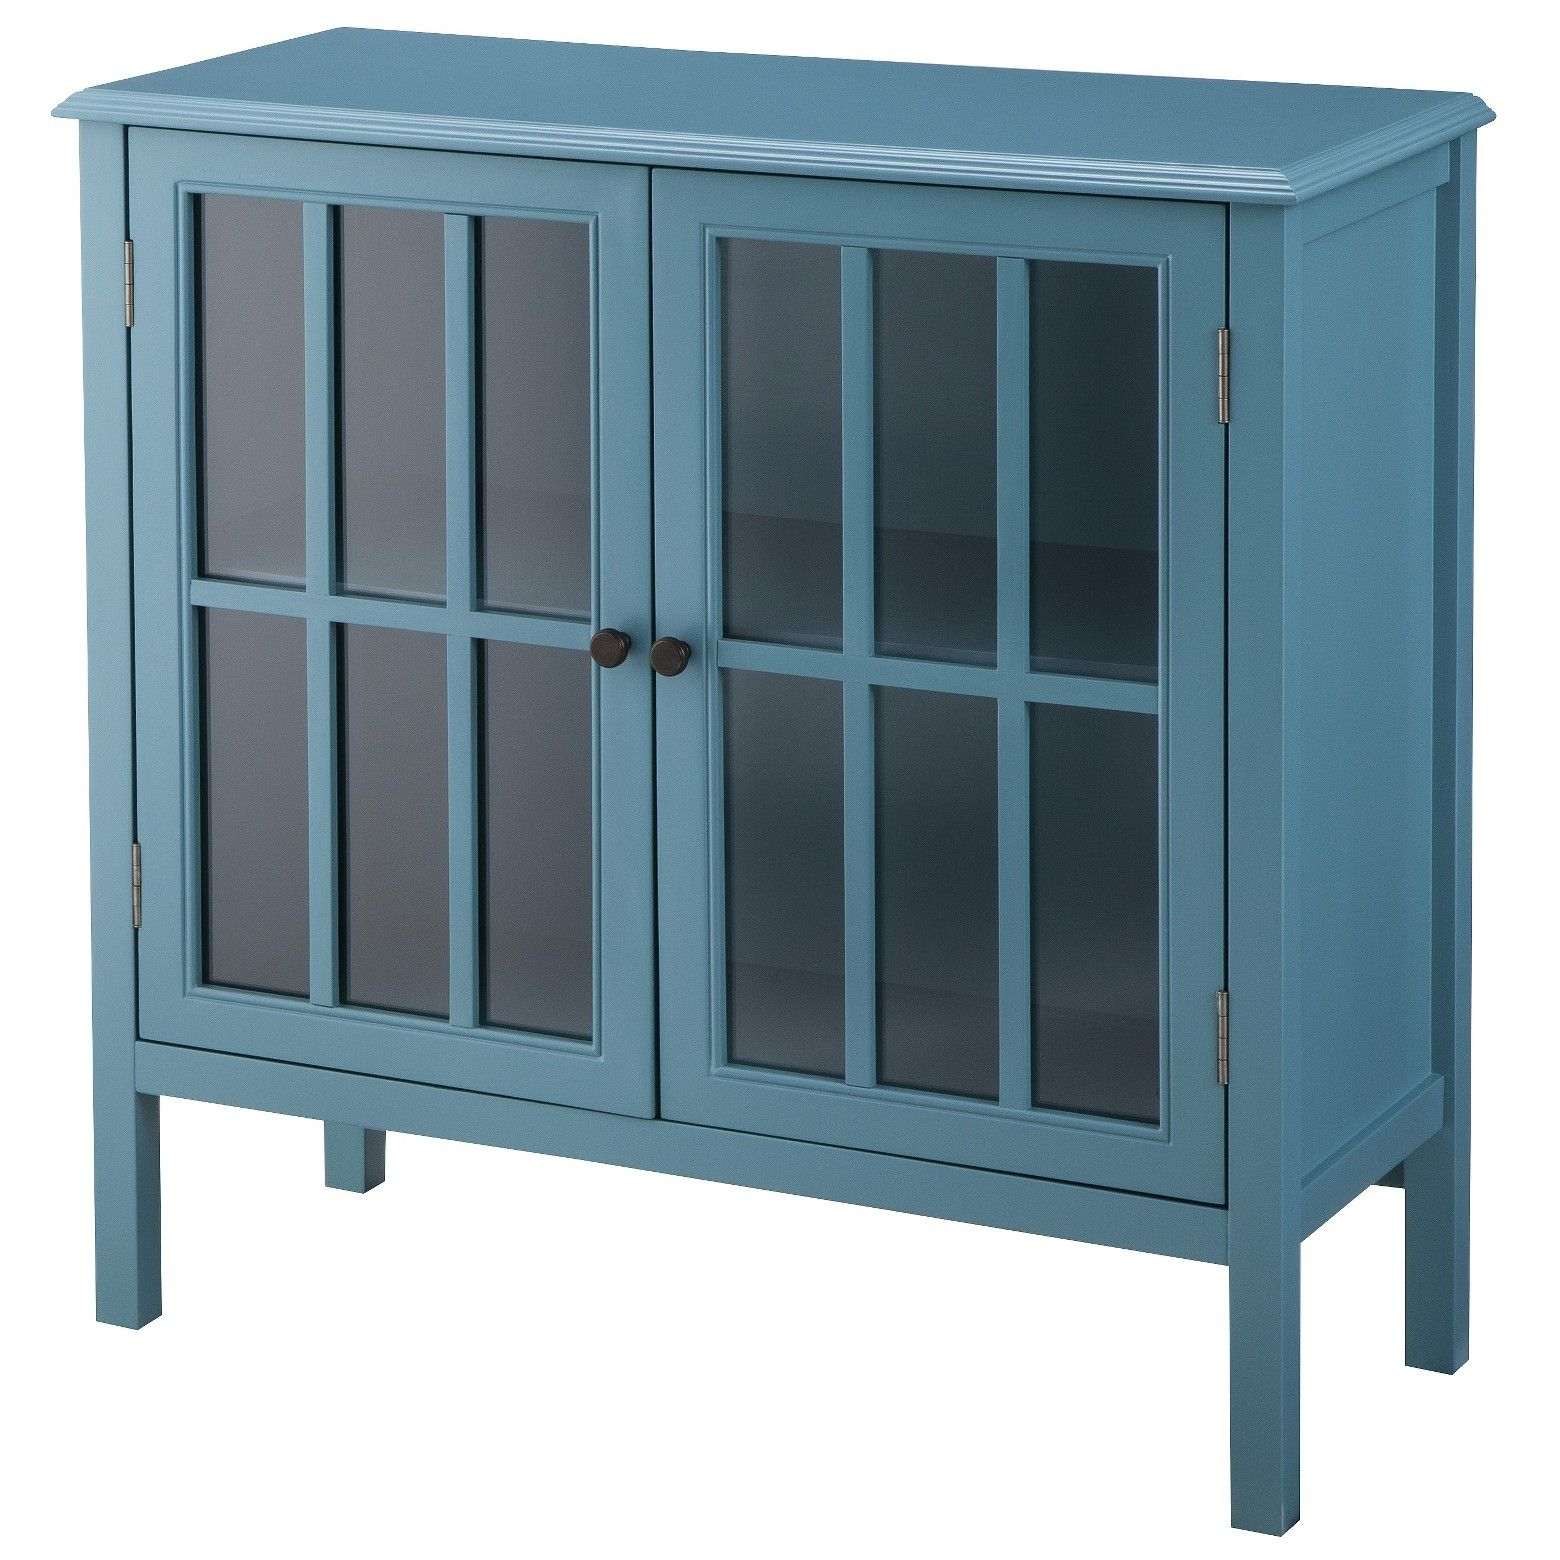 The Threshold Windham Accent Cabinet combines classic style with ...